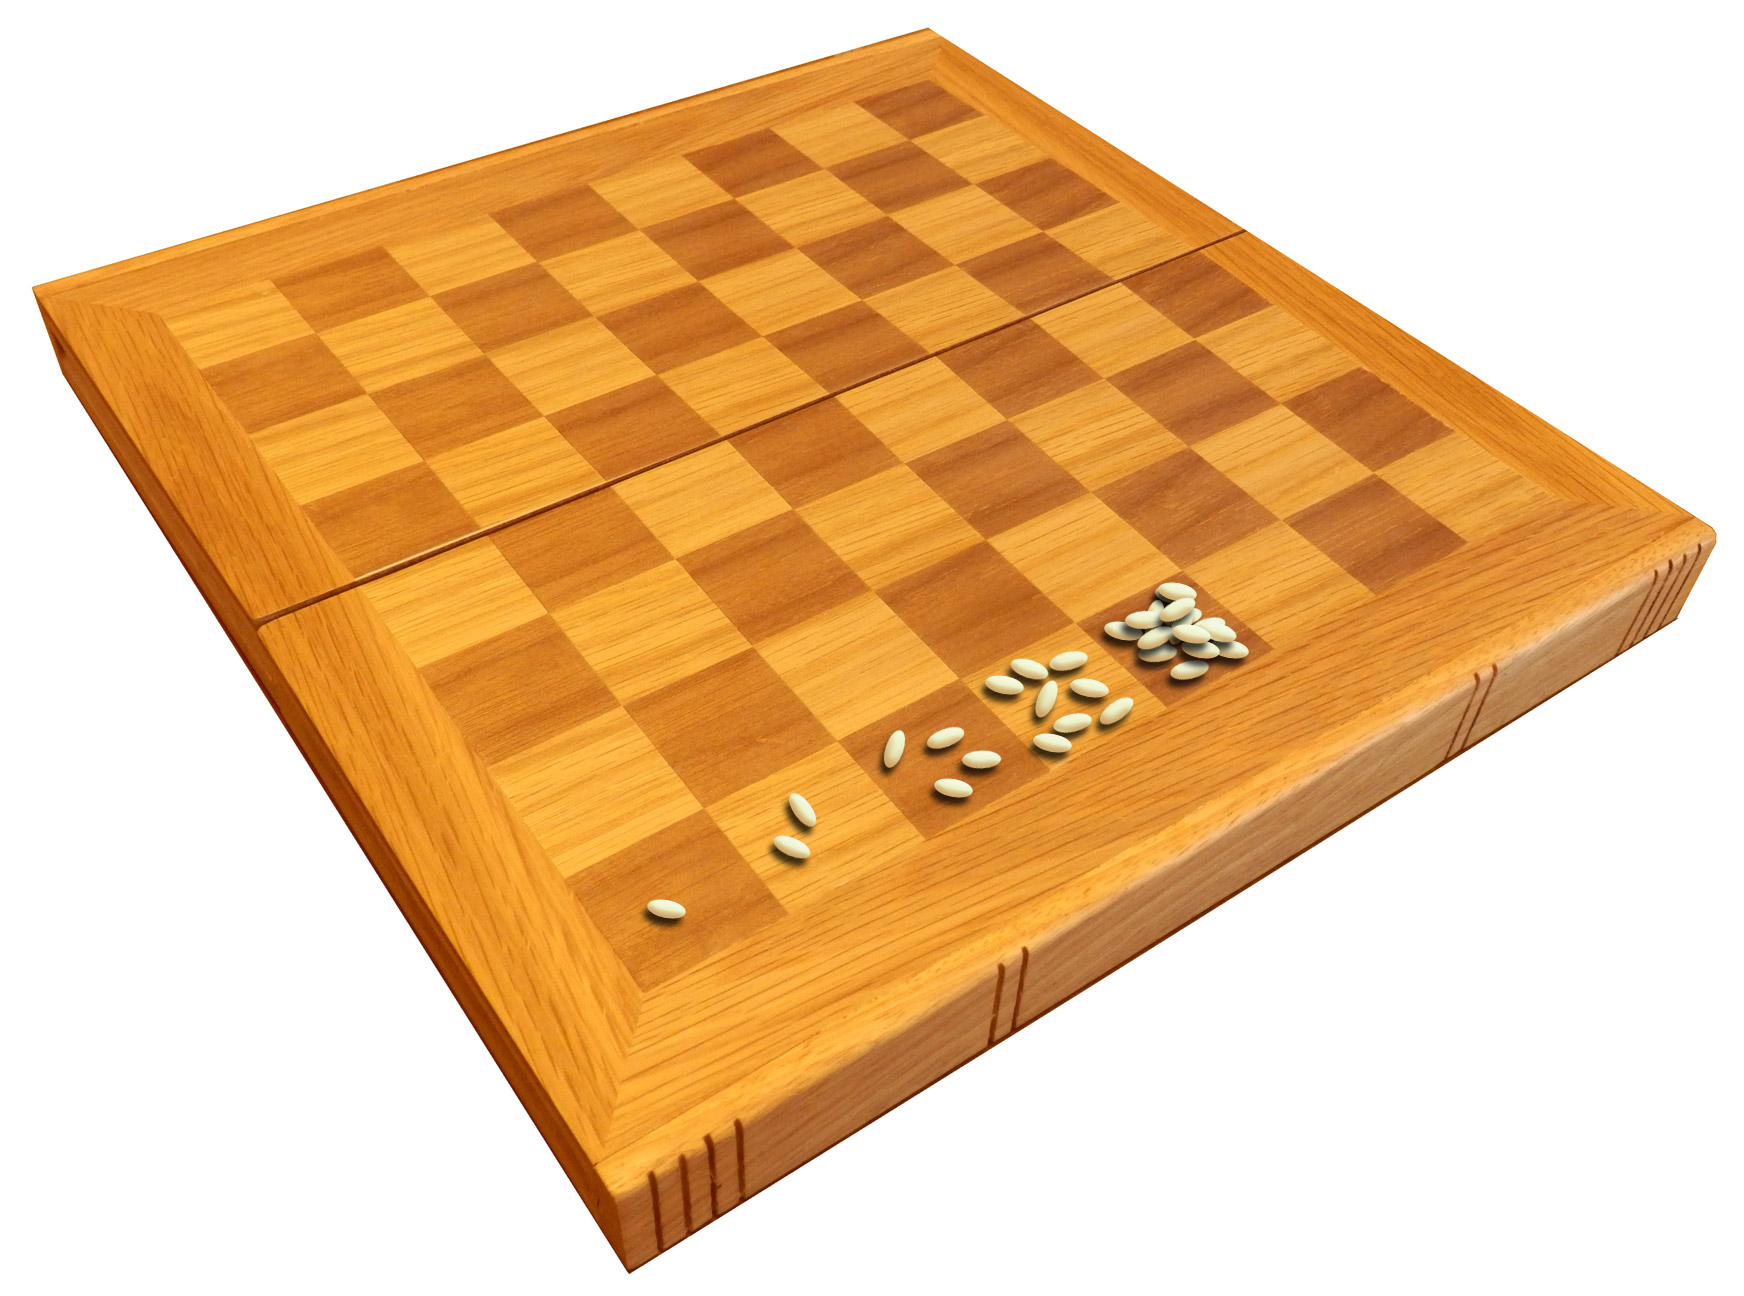 Wheat And Chessboard Problem